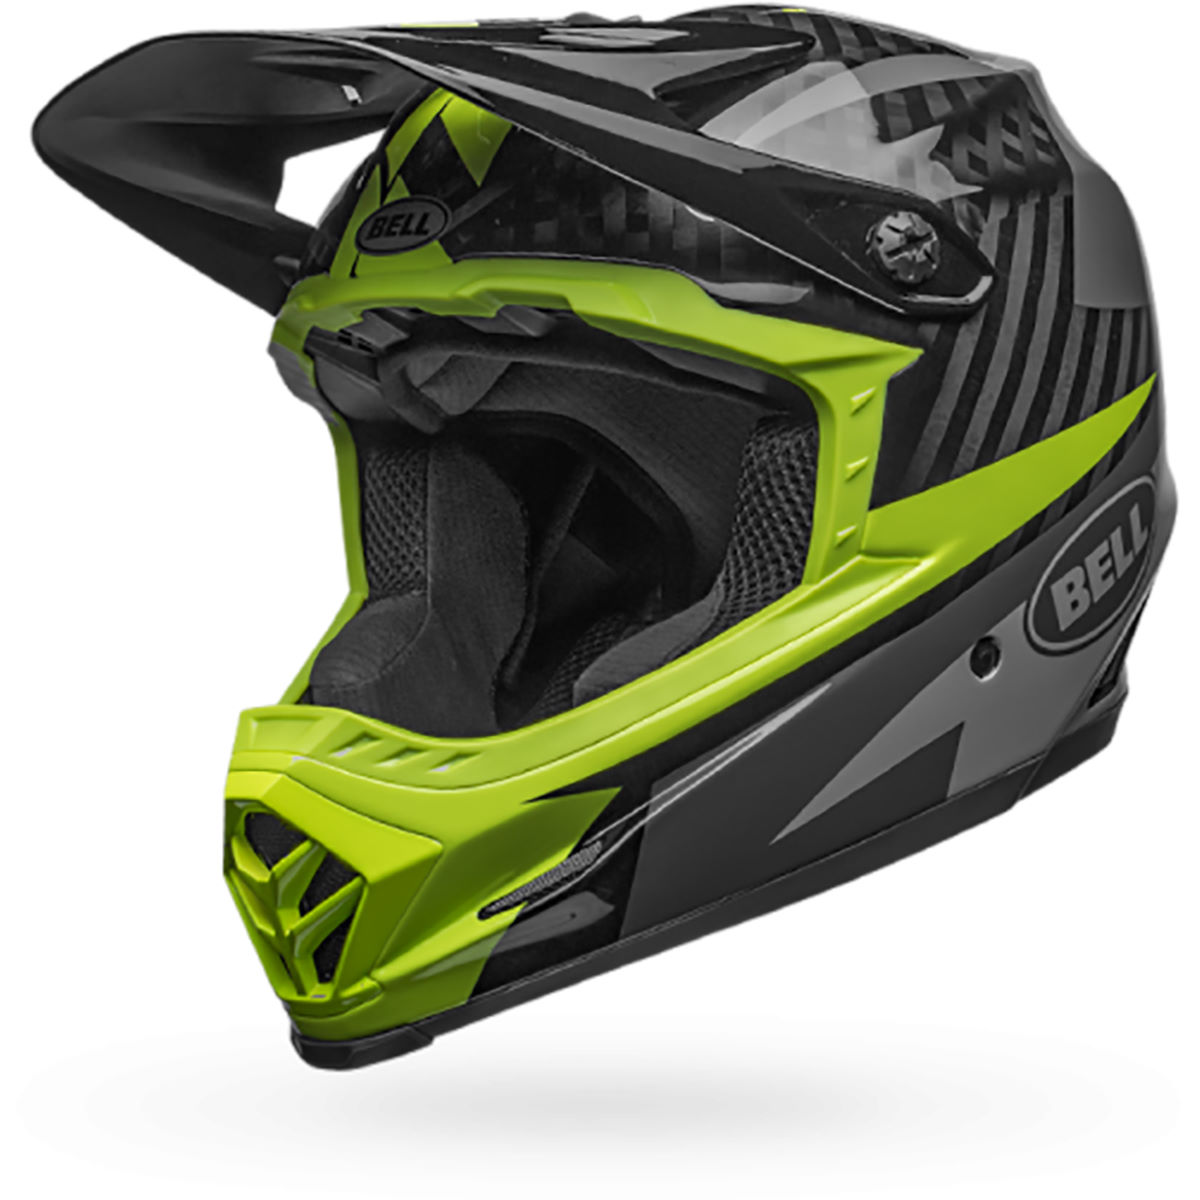 Casque VTT Bell Full-9 - XL/XXL Gloss Smoke/Shadow/P Casques